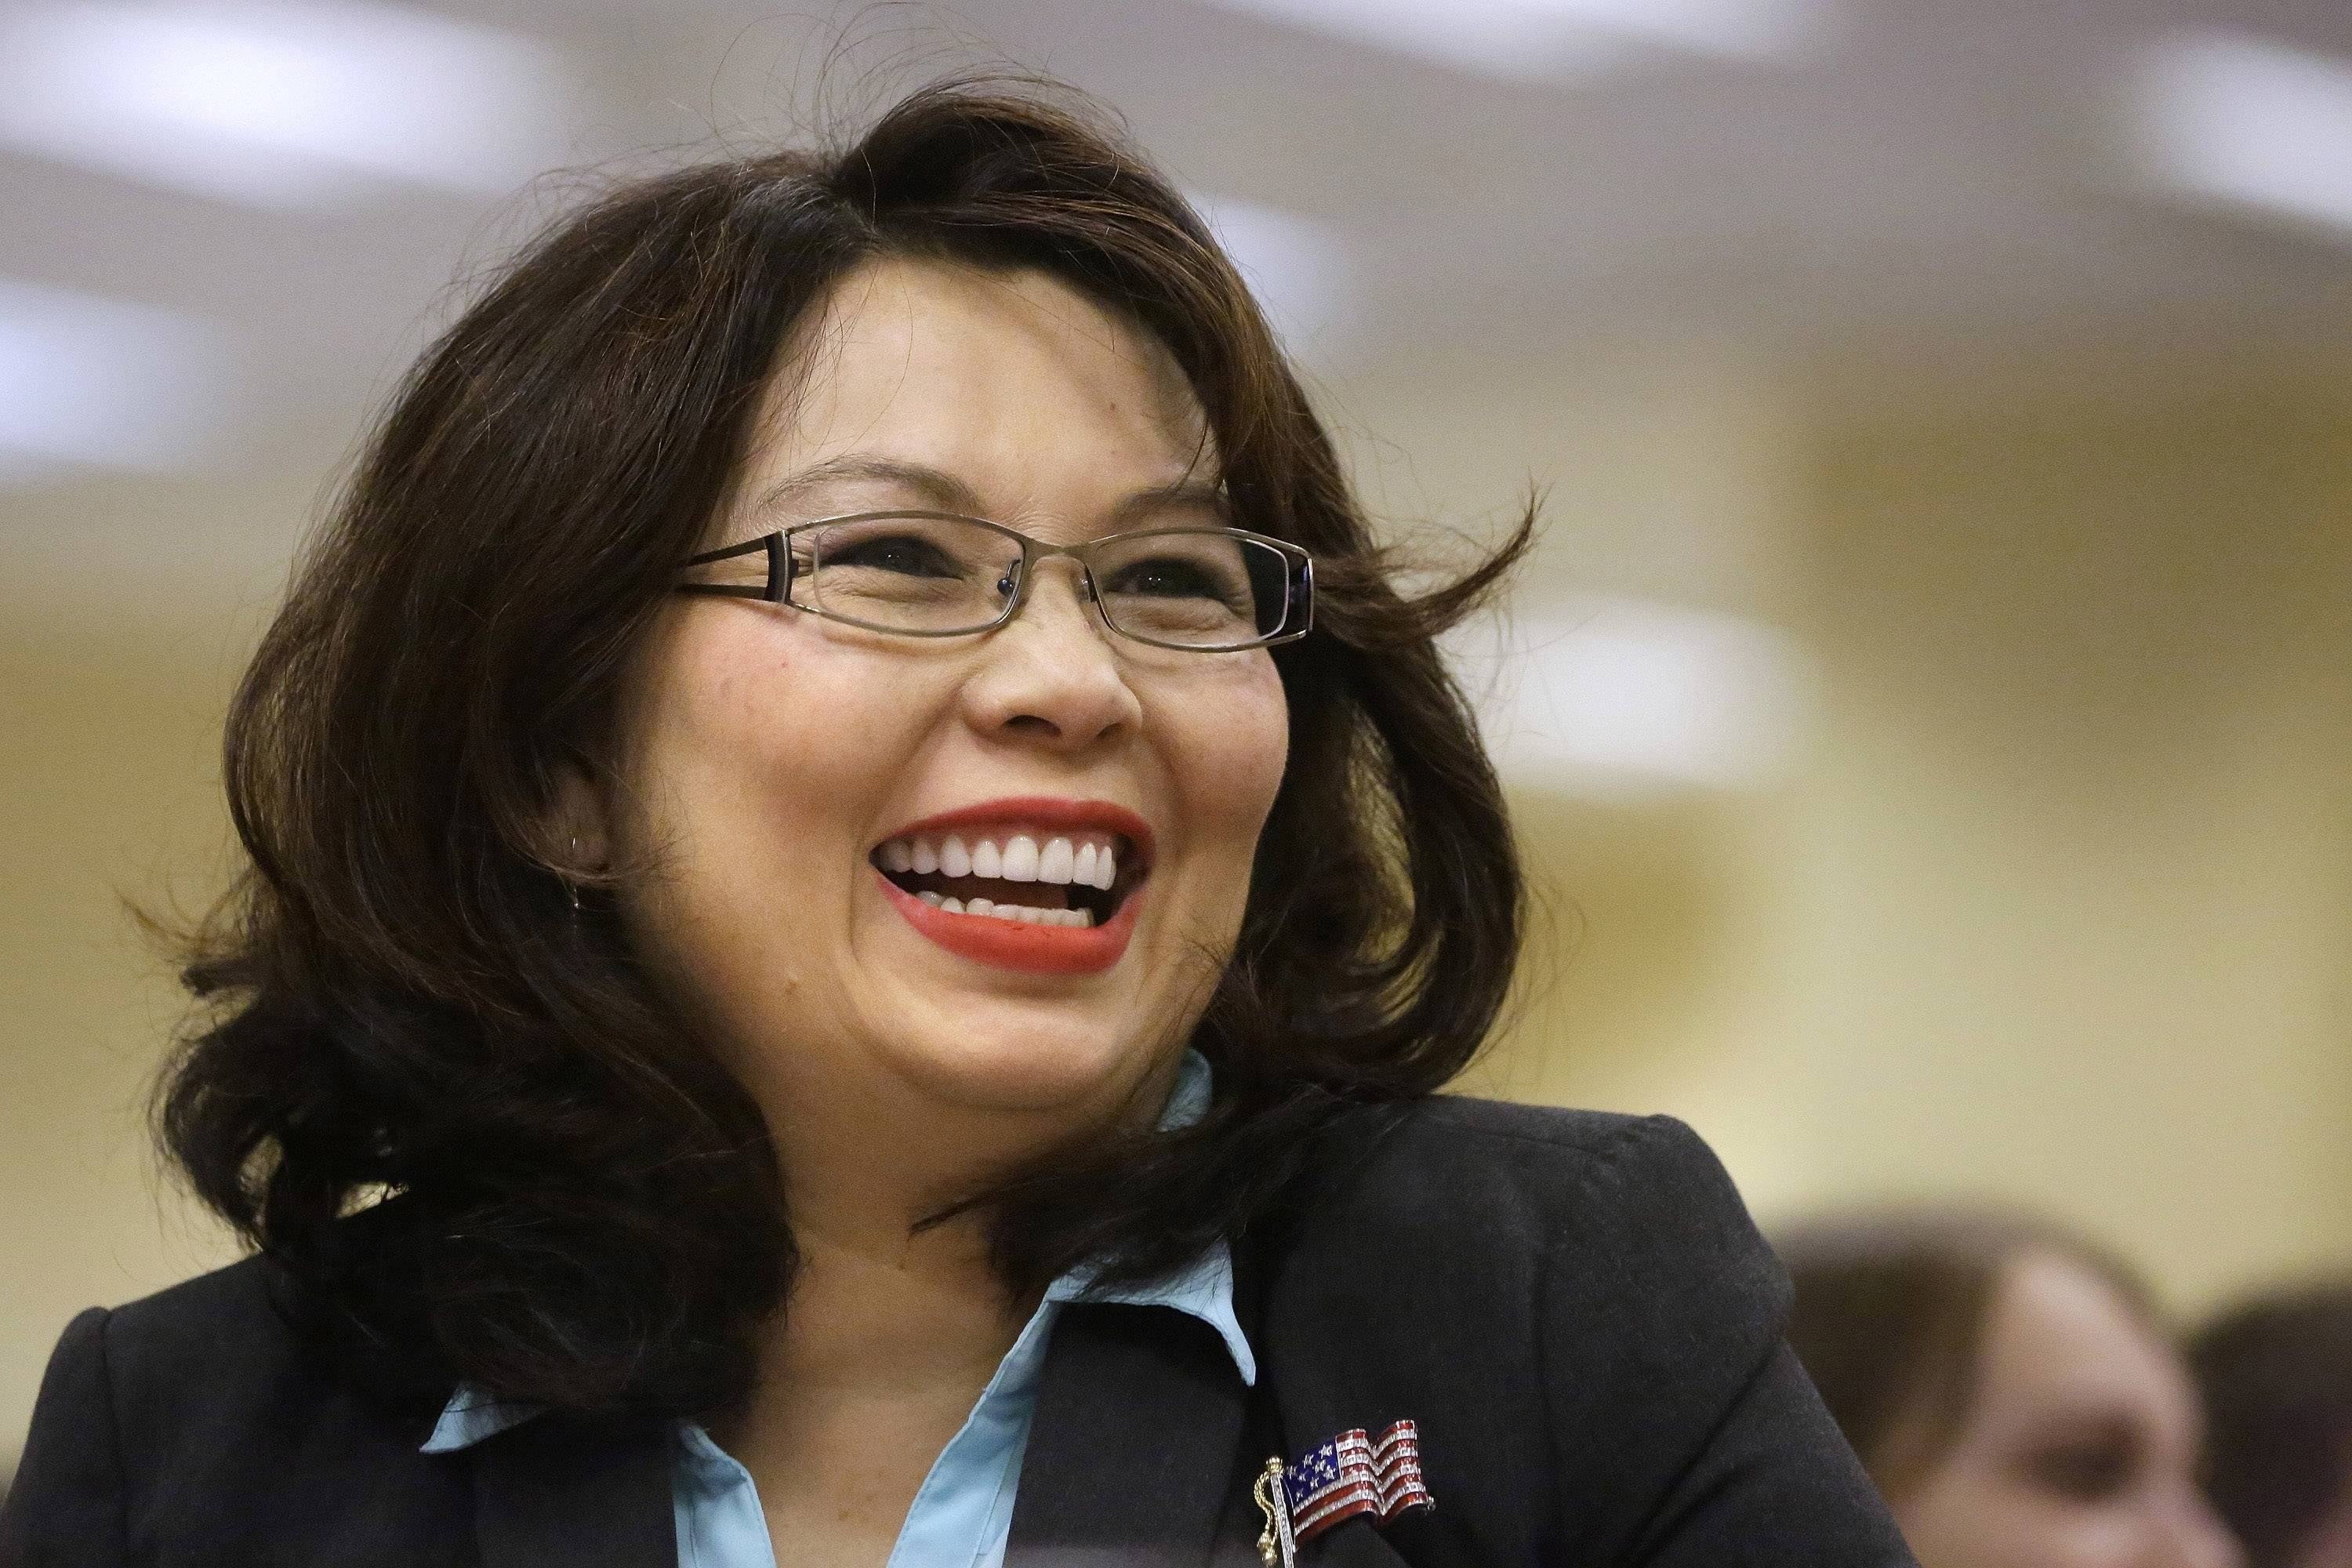 Democratic U.S. Rep. Tammy Duckworth of Hoffman Estates